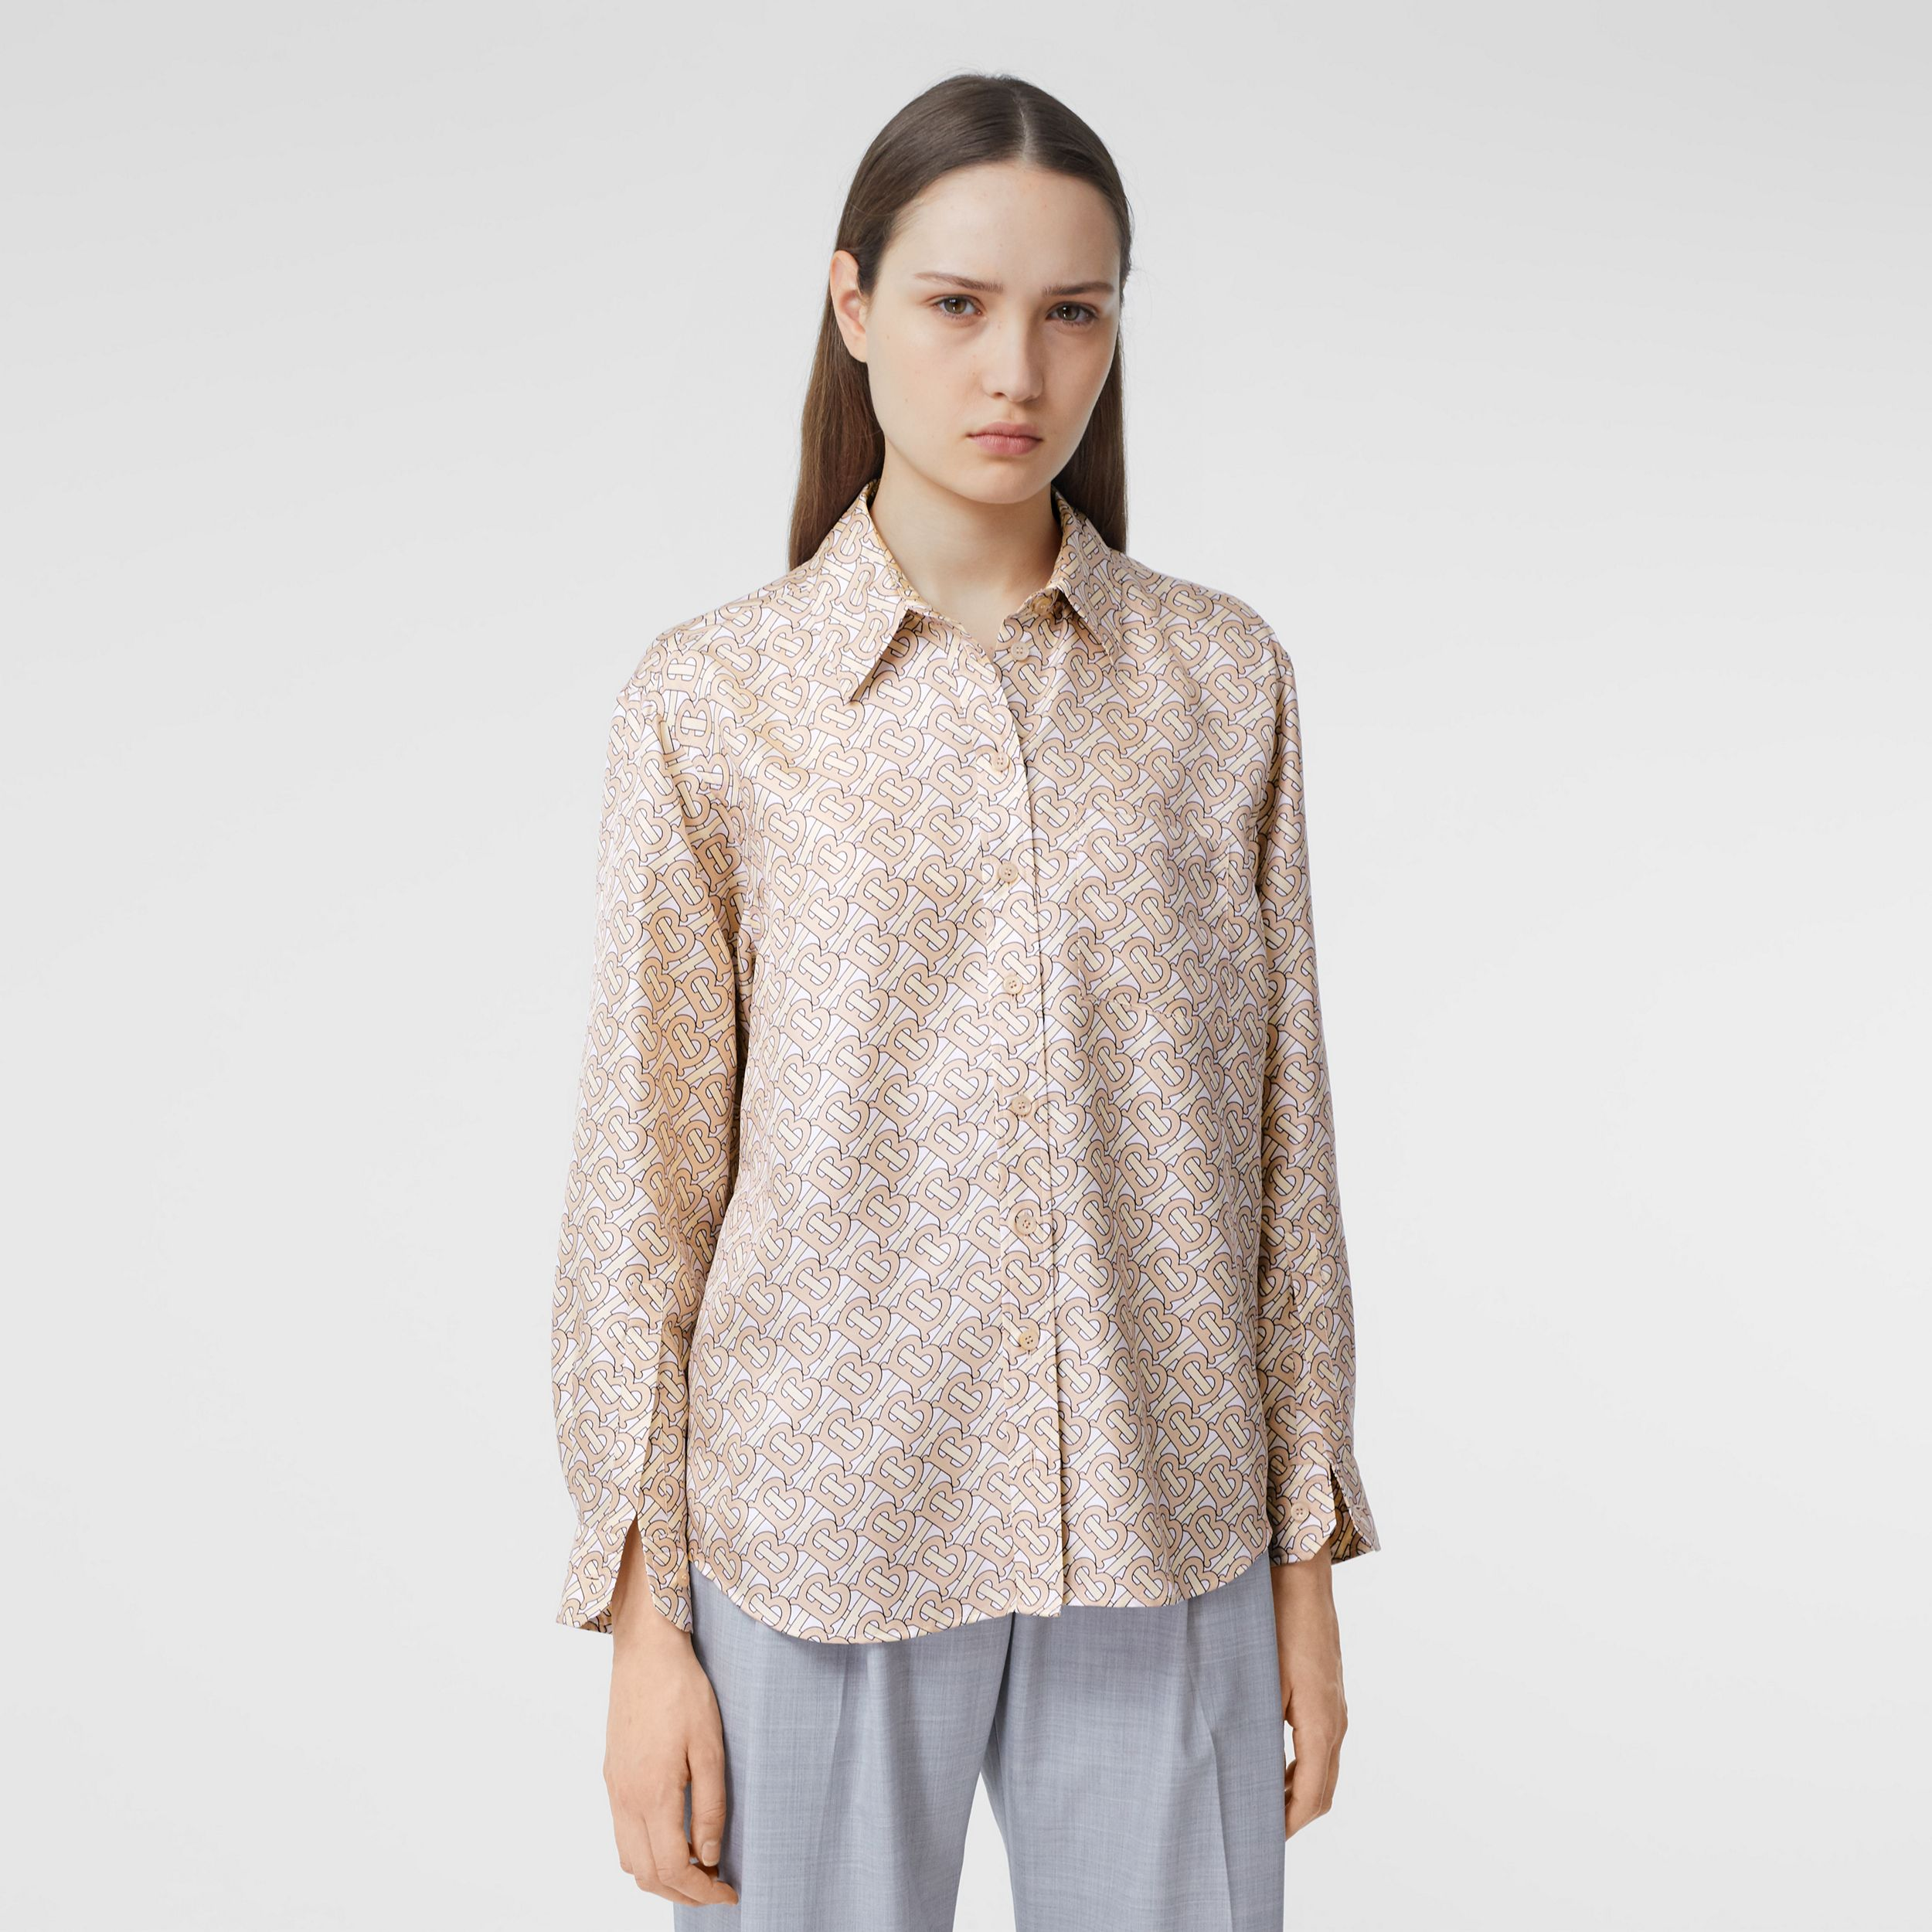 Monogram Print Silk Twill Shirt in Pale Copper Pink - Women | Burberry - 1